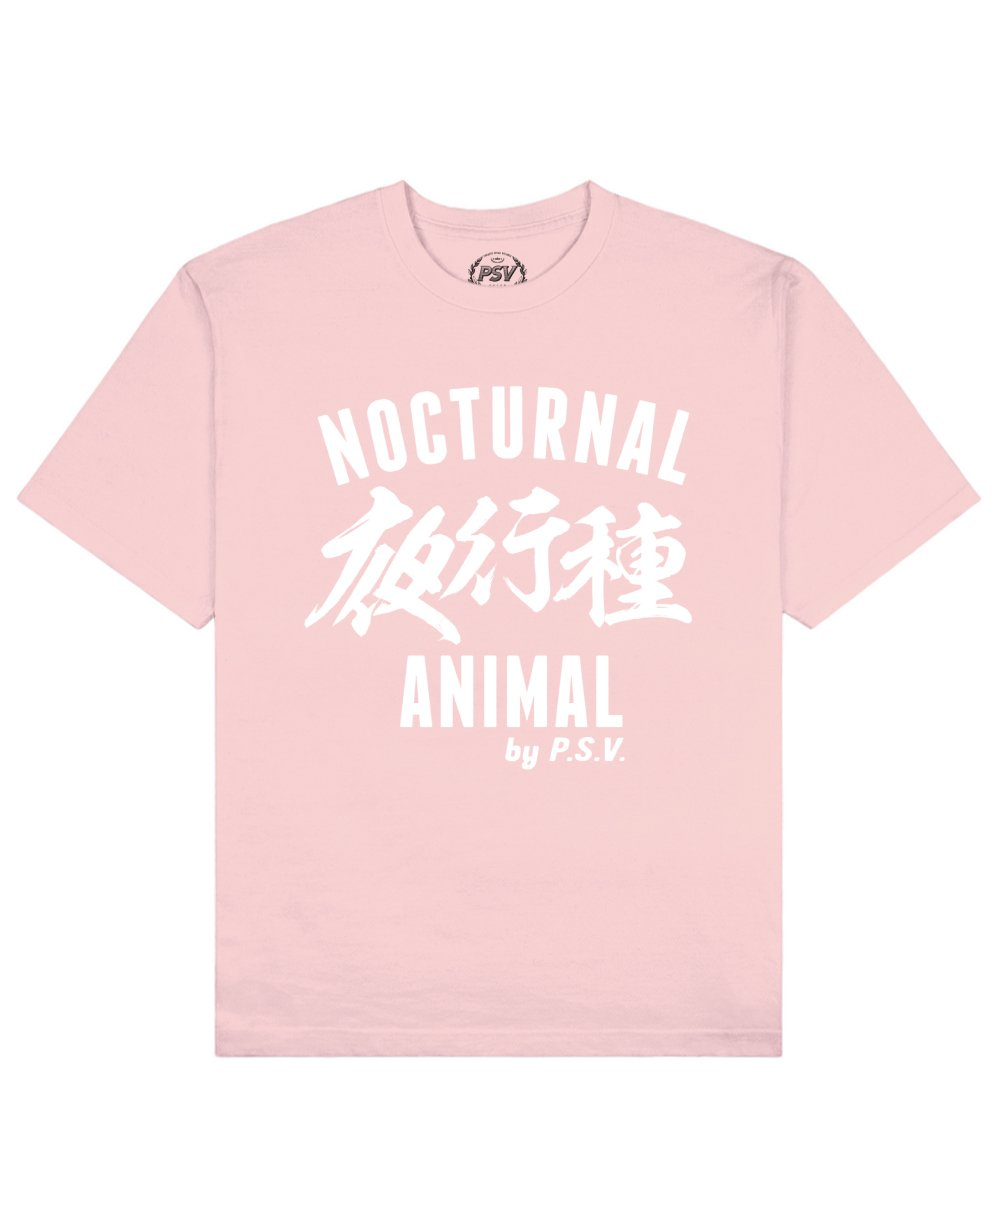 Nocturnal Animal Print T-Shirt in Pink - T-Shirts - PSV - BRANMA